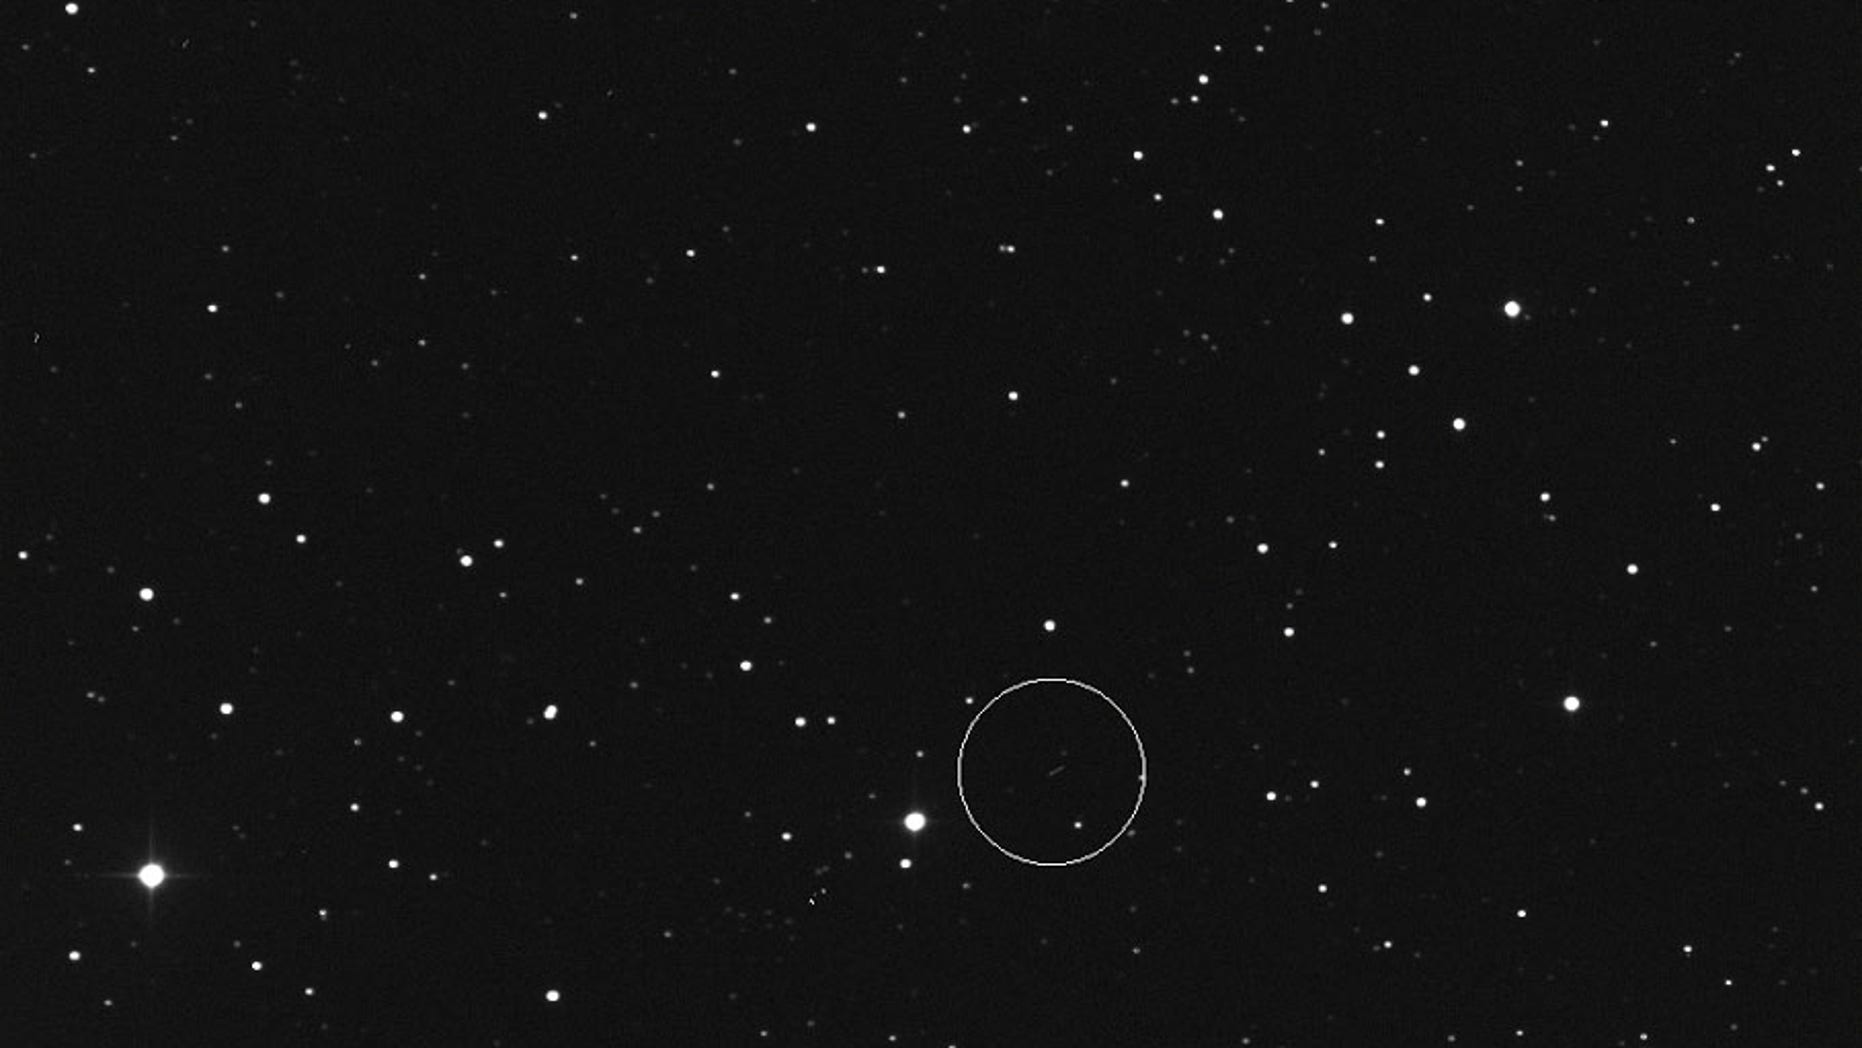 The asteroid 2017 BX is seen in this image (in circle) ahead of its close Earth flyby on Jan. 24, 2017. The asteroid passed by at a distance of 162,252 miles - about 30 percent closer than distance between the Earth and moon. (Slooh.com)